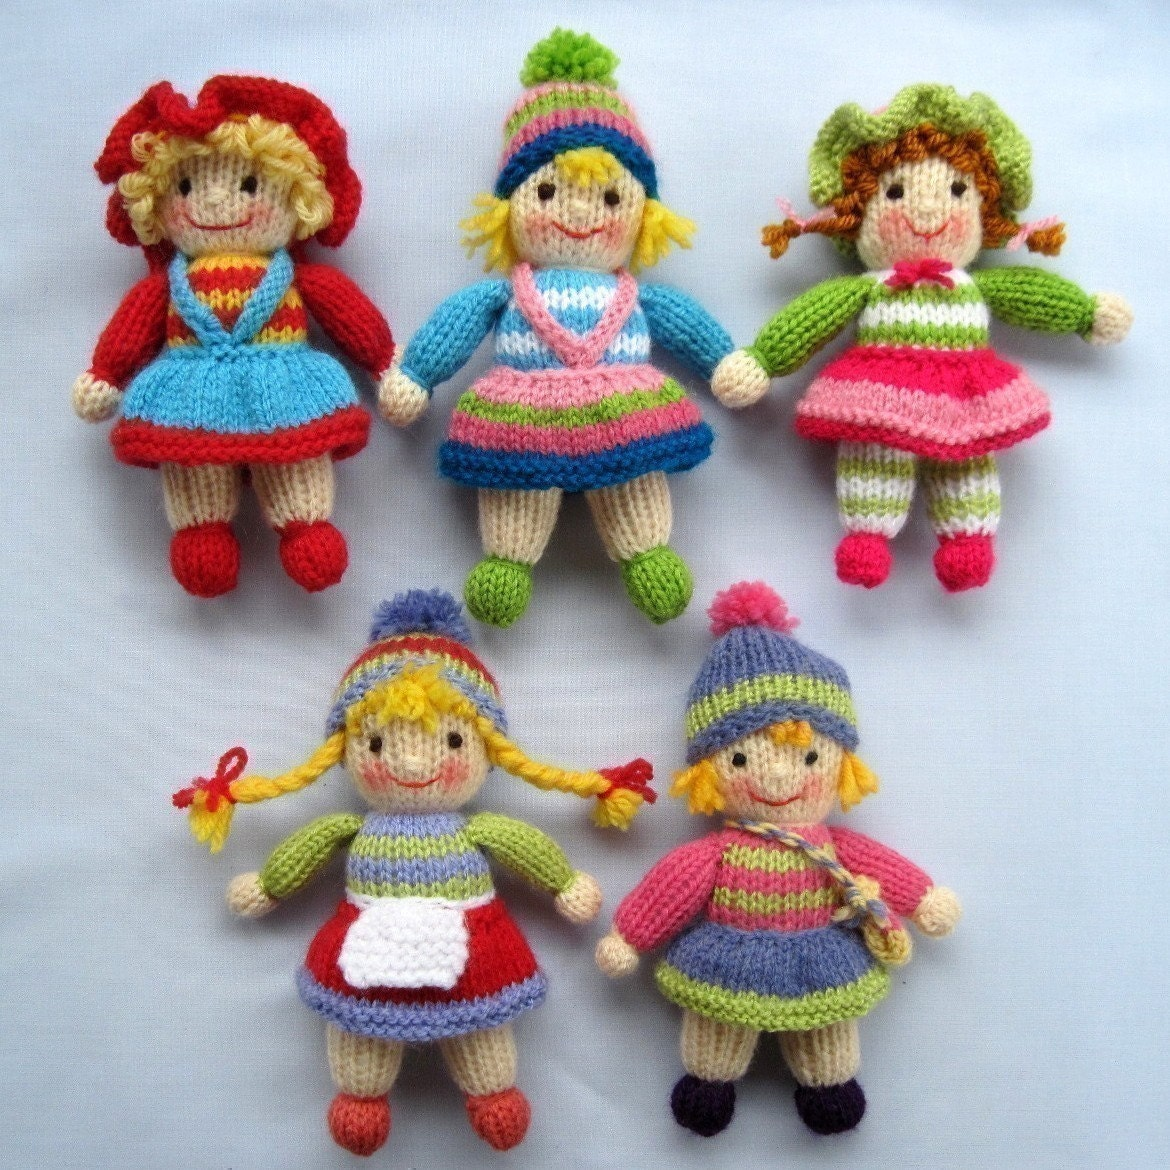 Knitting Patterns For Toy Dolls : JOLLY TOTS toy dolls PDF email knitting pattern